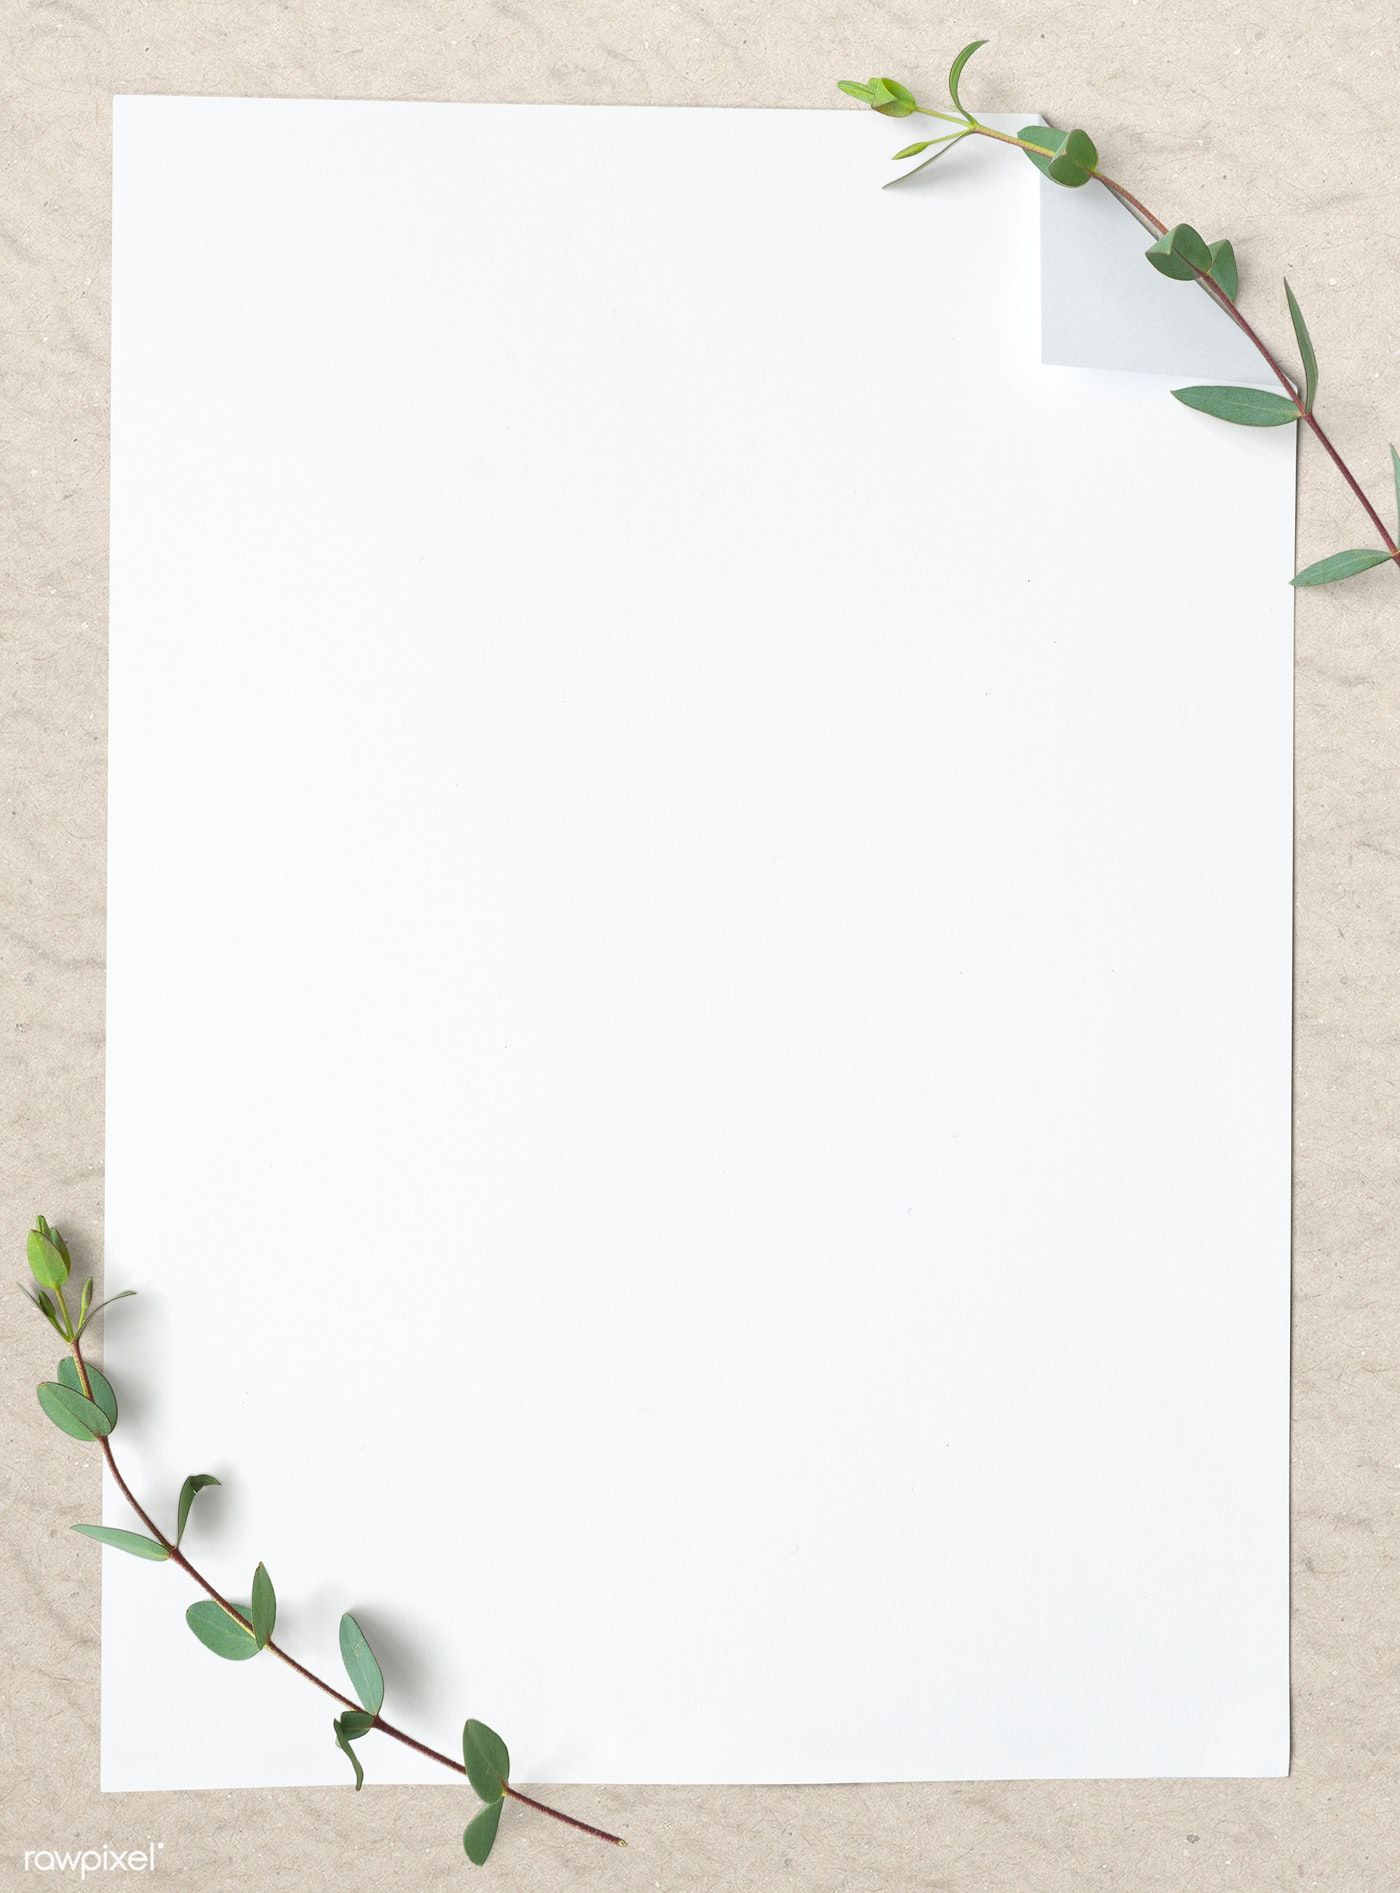 Download Premium Psd Of Blank Plain White Paper Template